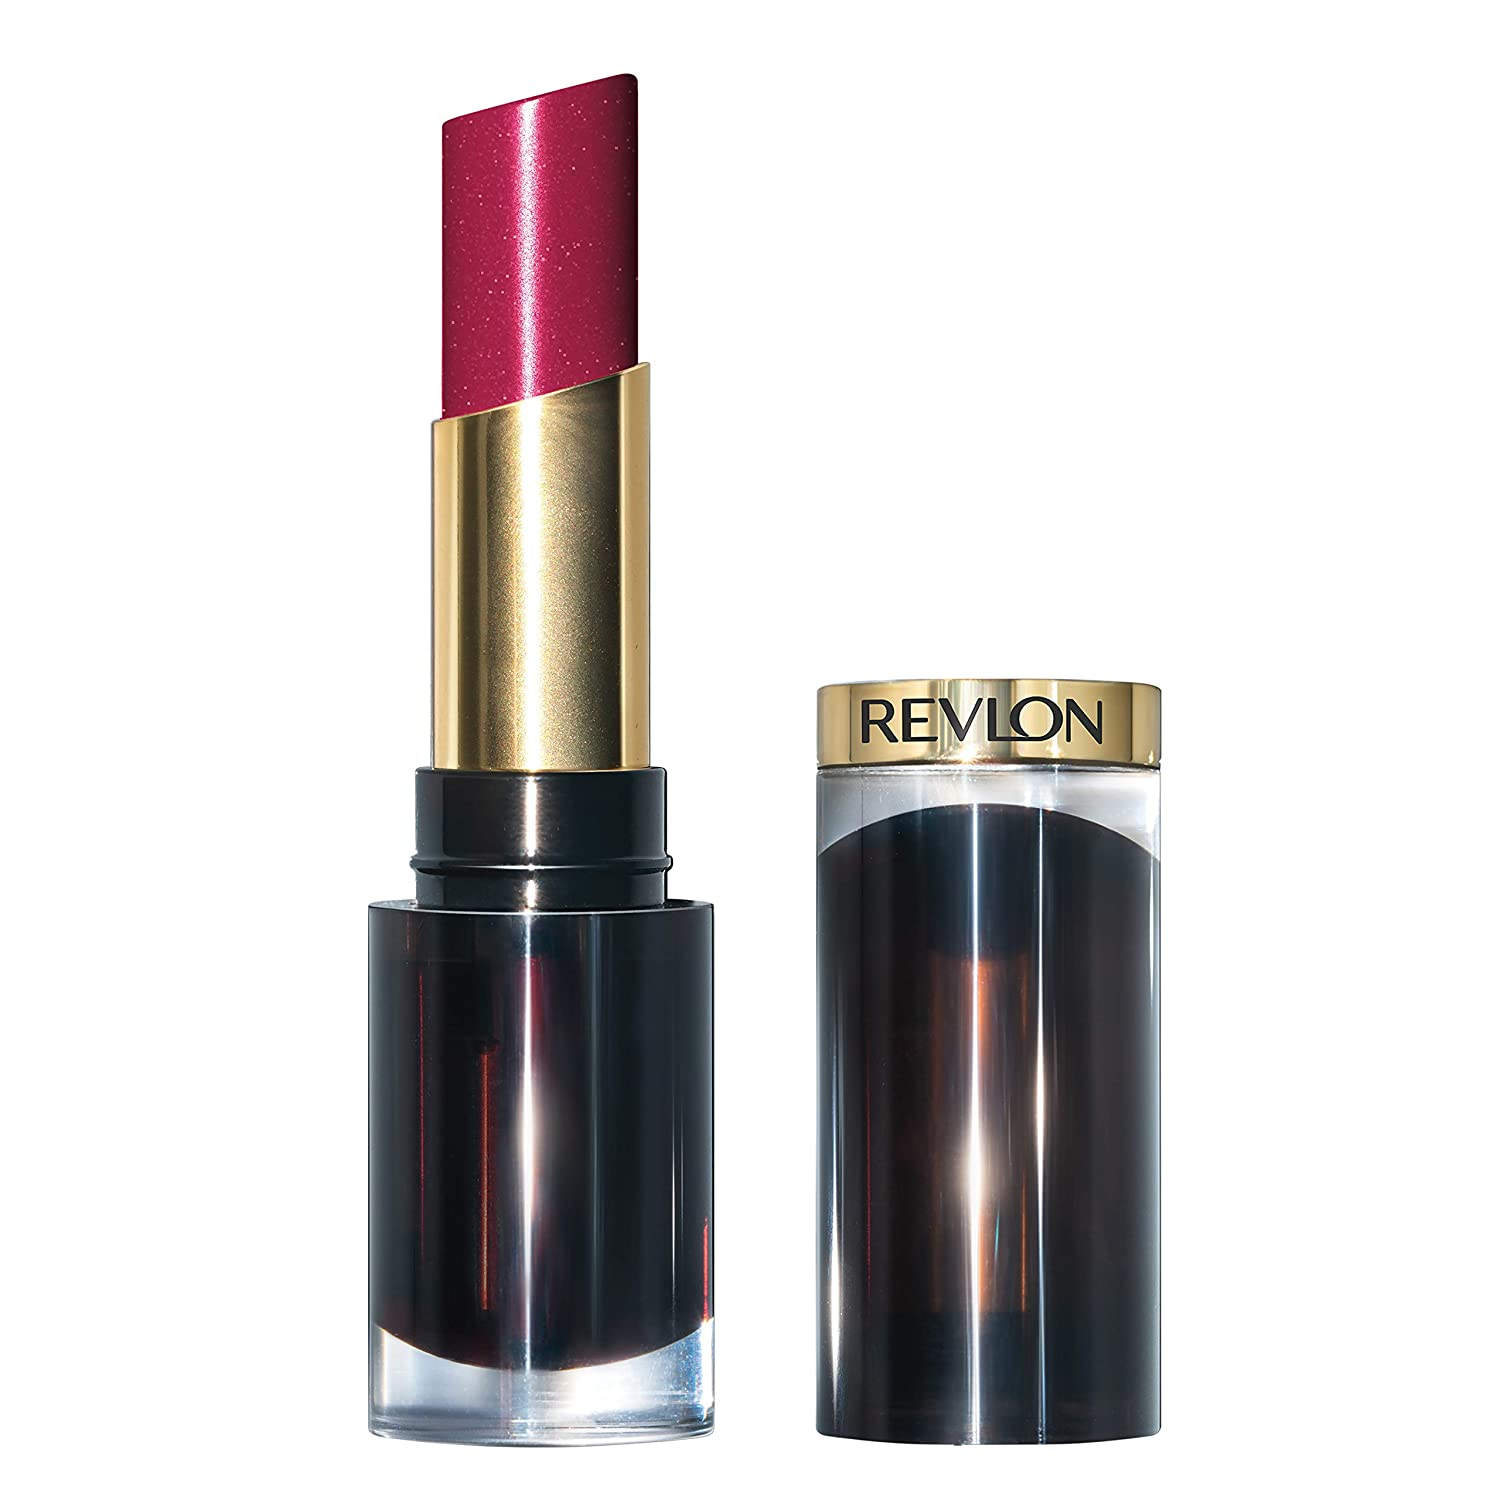 Revlon Super Lustrous Glass Shine Lipstick, Moisturizing Lipstick with Aloe and Rose Quartz in Red, 025 Glassy Ruby, 0.15 oz